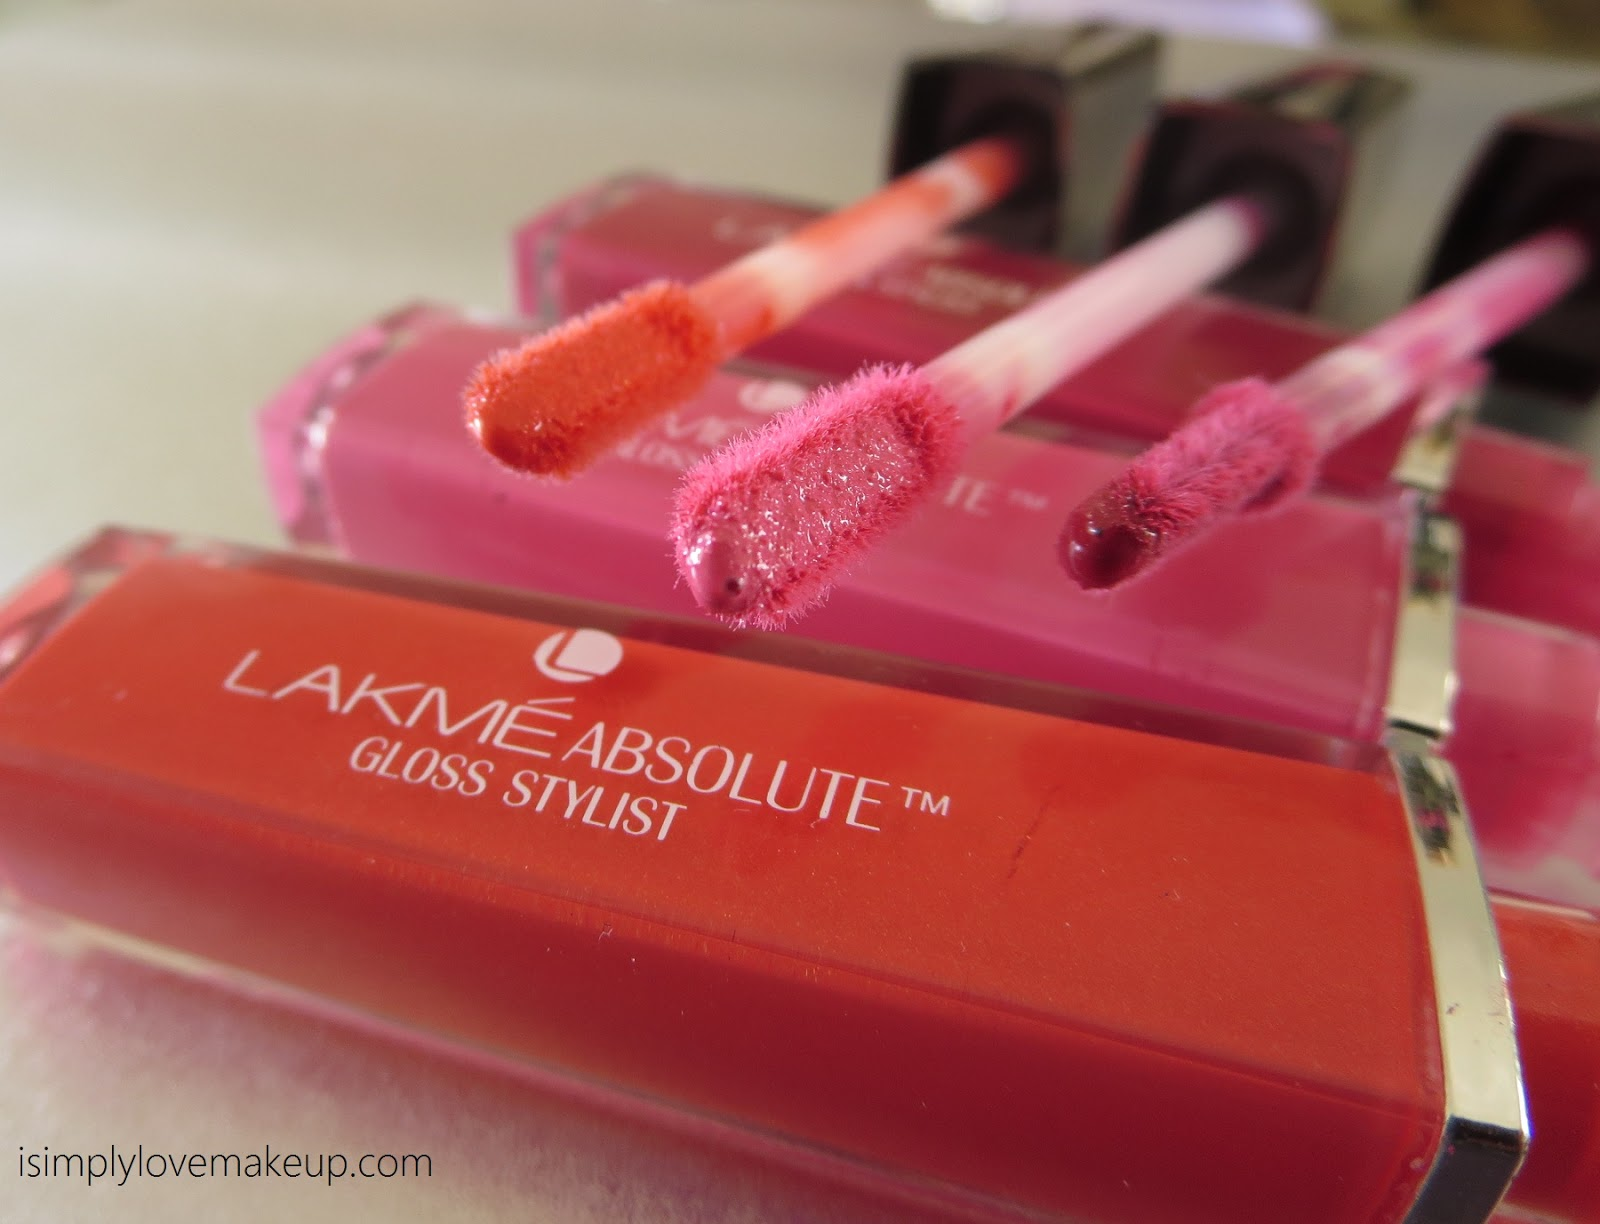 Lakme Absolute Gloss Stylist - Review and Swatches